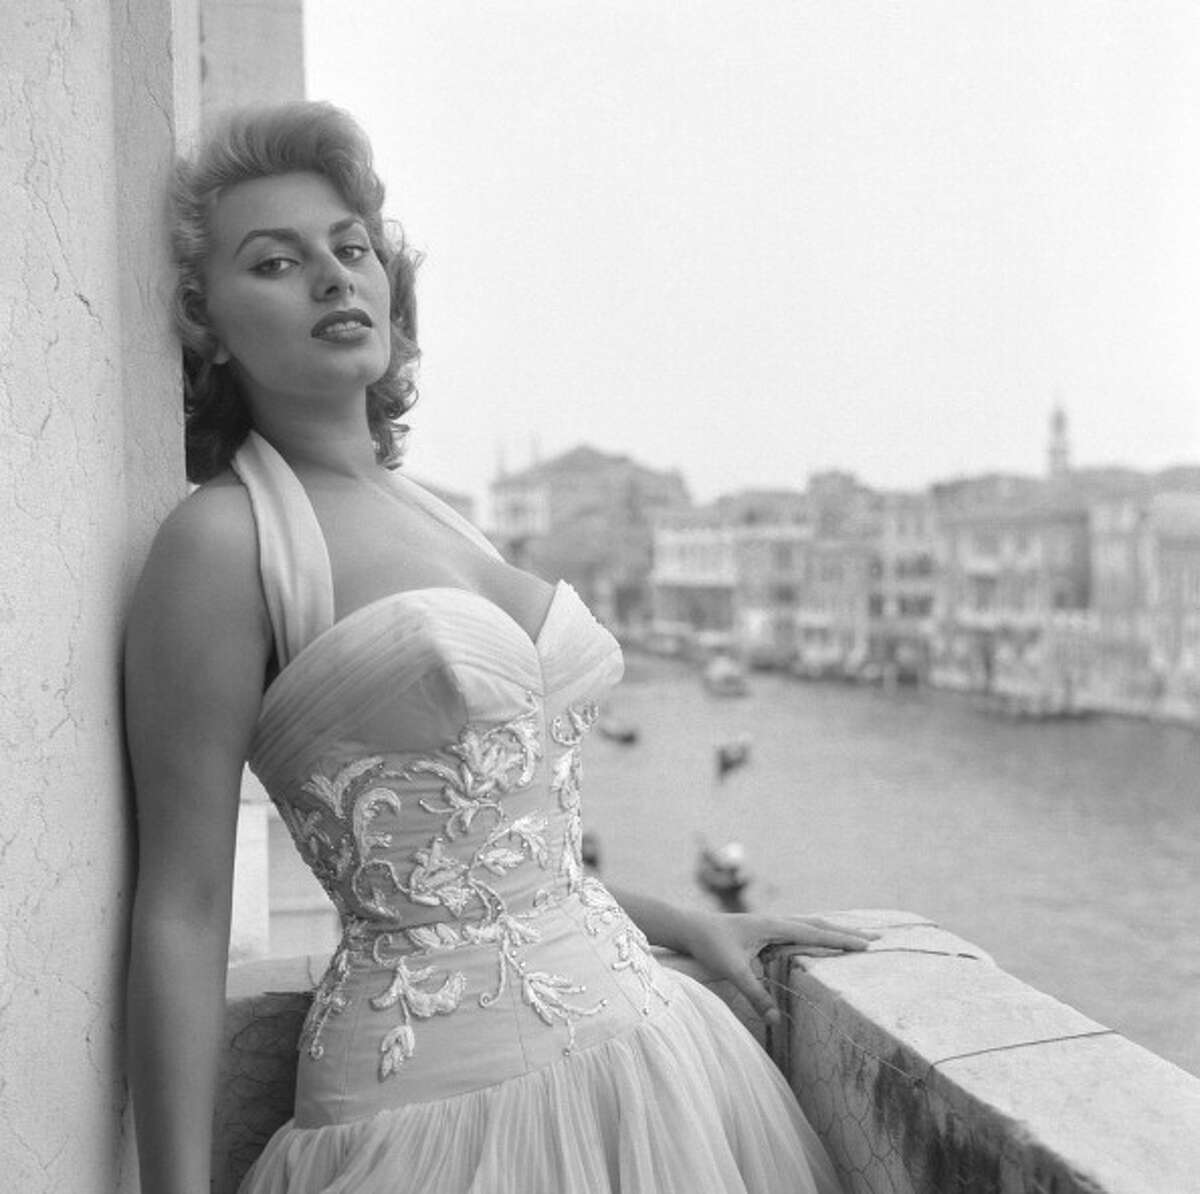 PHOTOS: The evolution of bombshell Sophia Loren Sophia Loren, the Italian actress known for her smoldering exotic look, turns 83 years old on Wednesday. See how her look has evolved over the years...